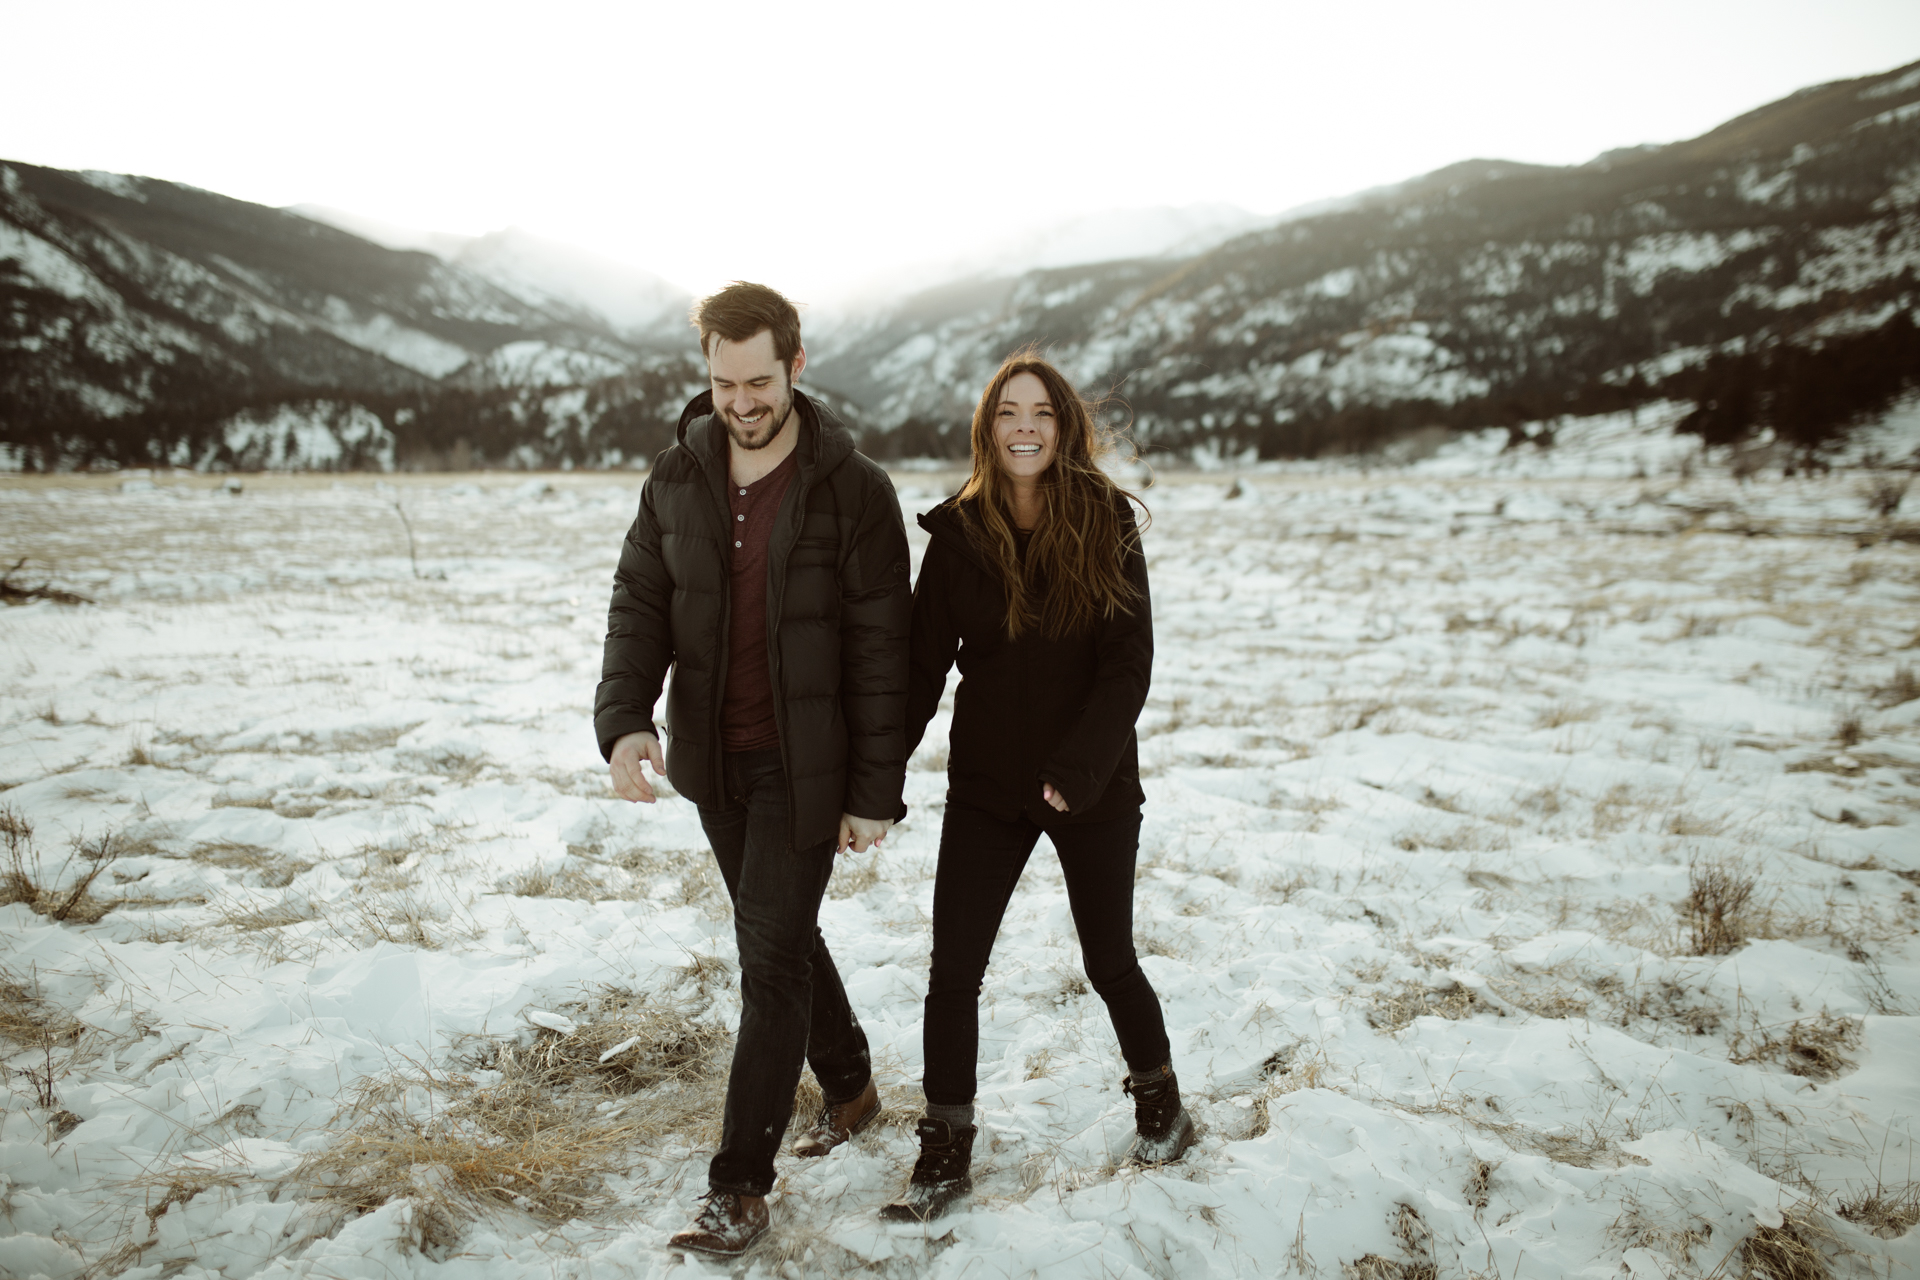 winter-rocky-mountain-national-park-engagements-34.jpg